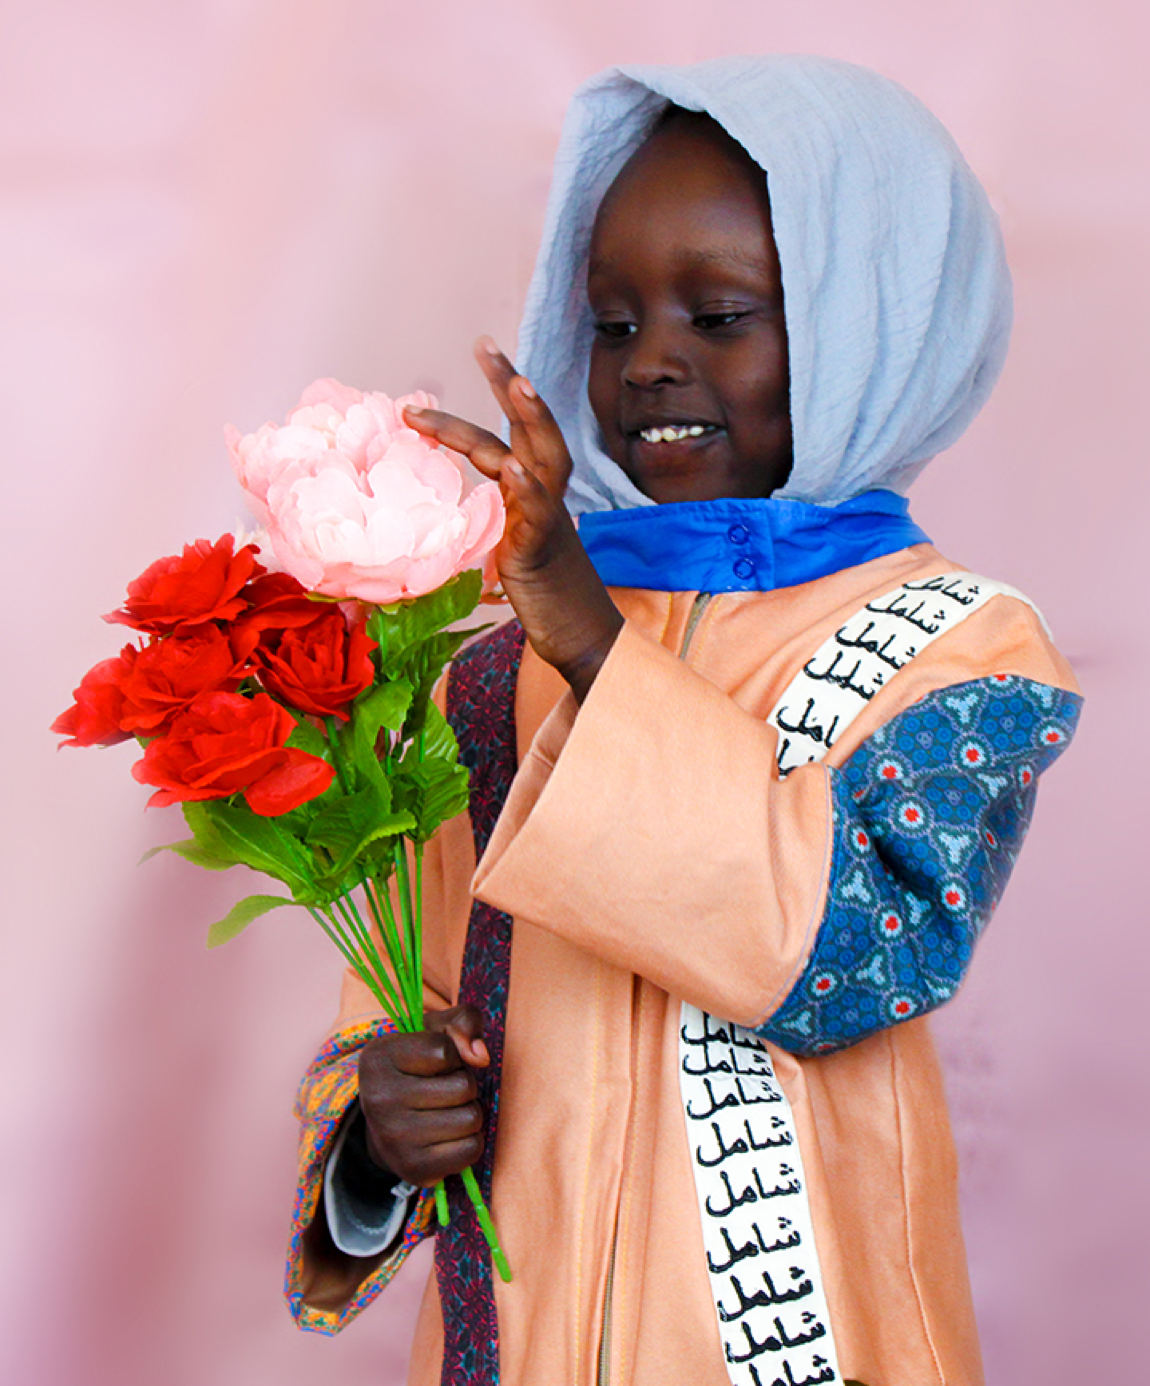 Hawwaa Ibrahim Collection Photo 1 - Child with flowers in hand